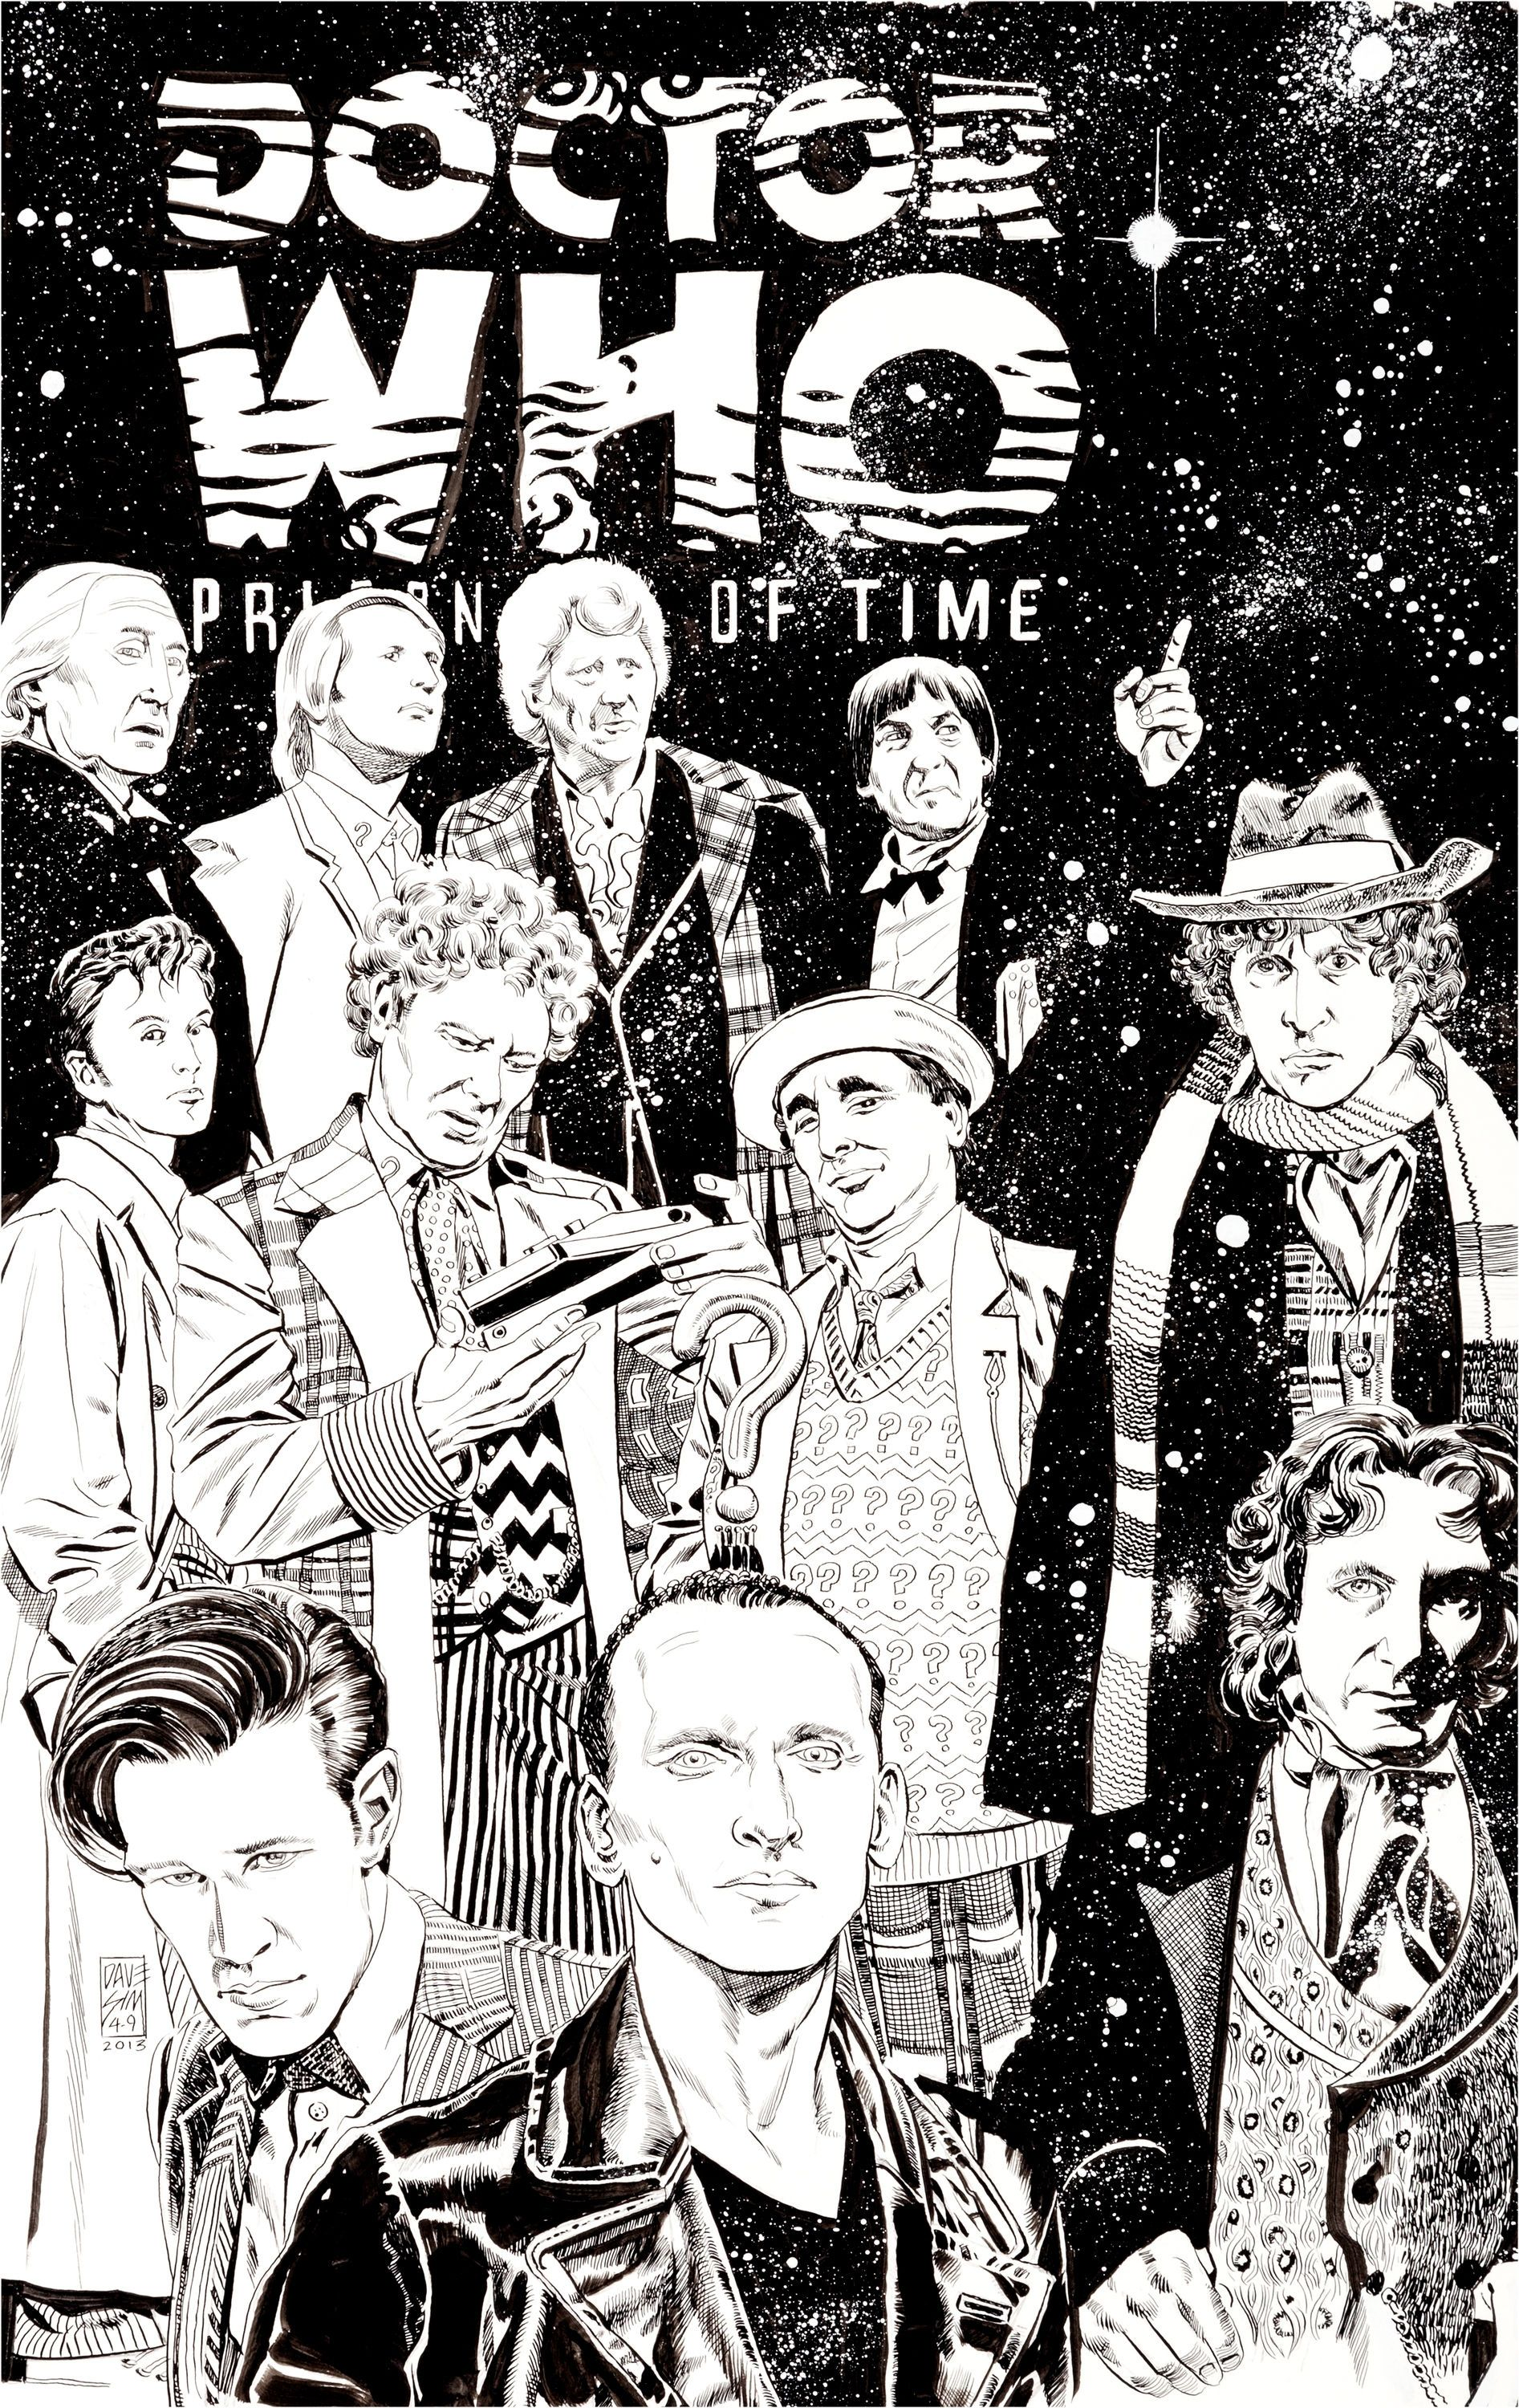 Image of Dave Sim Doctor Who Prisoners of Time 12